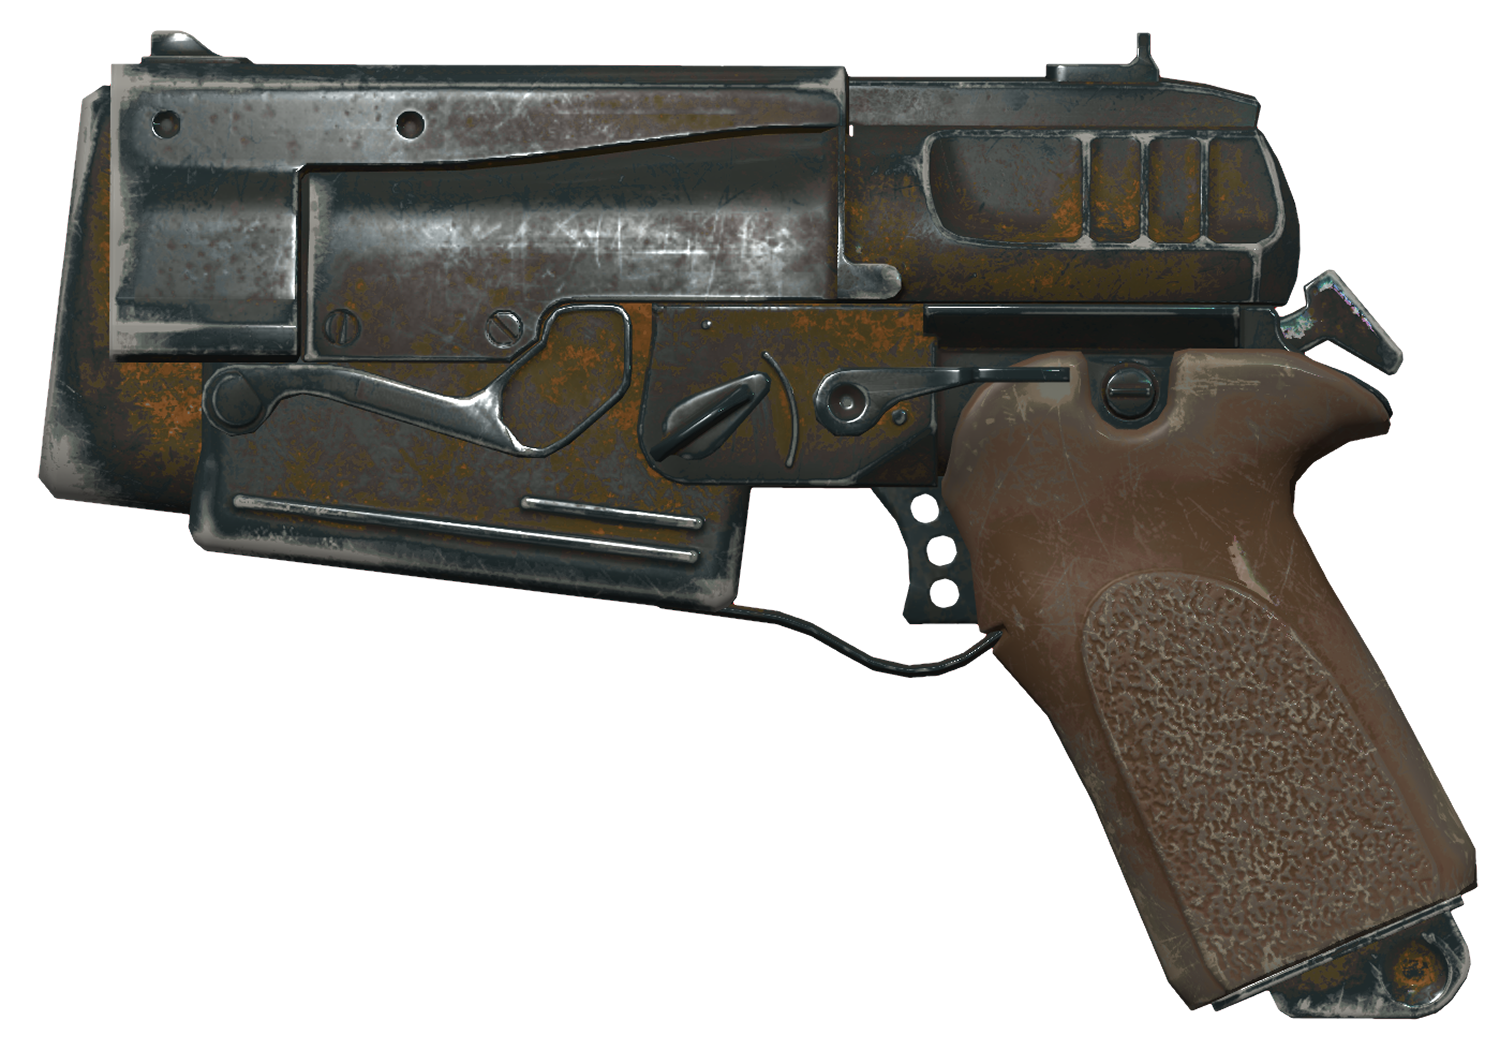 10mm Pistol Fallout 4 Fallout Wiki Fandom Unlike spread which is the invisible possible deviation of the projectile from a perfect shot, recoil visibly moves the weapon and crosshairs, and can be. 10mm pistol fallout 4 fallout wiki